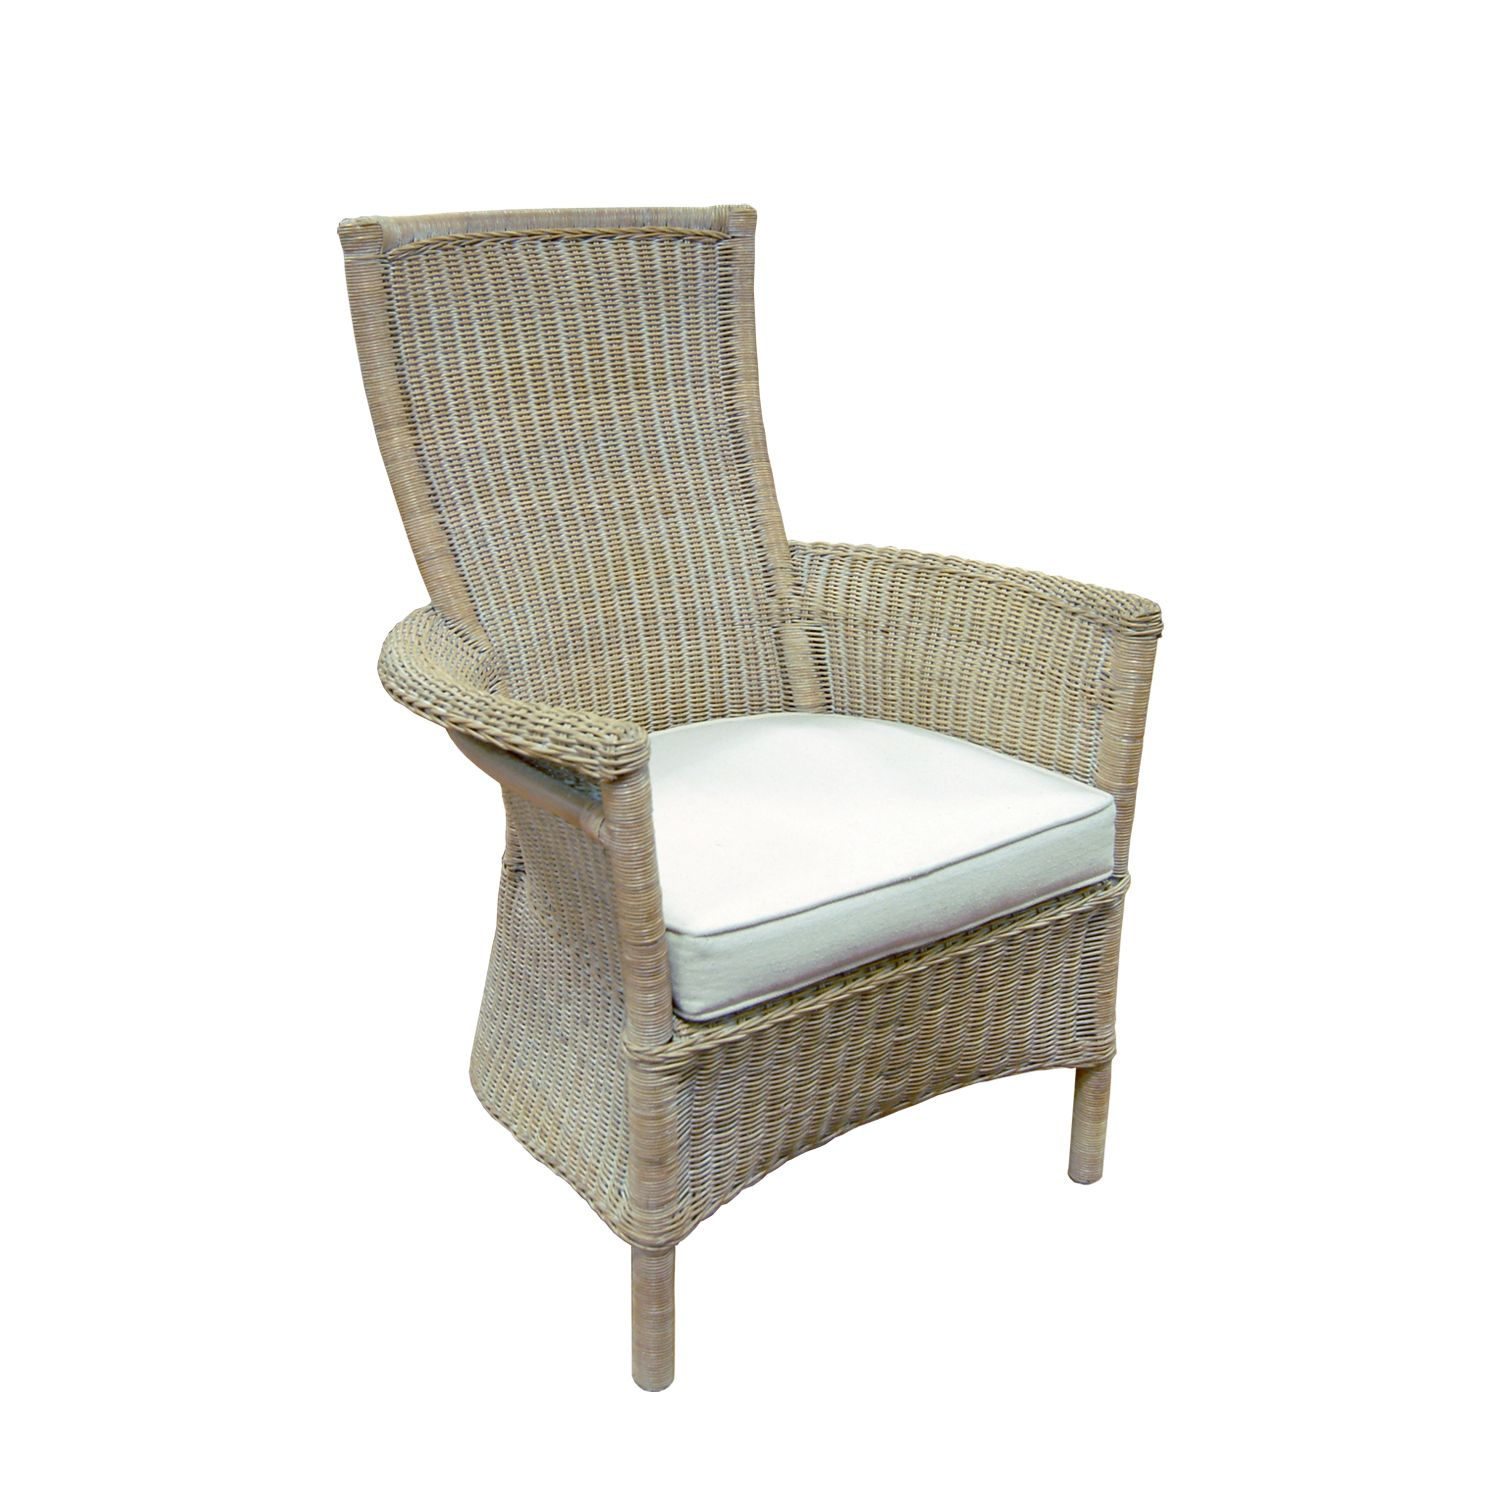 Esszimmermöbel Rattan Wicker Chairs Vanessa Wicker Chair From Glasswells Ltd Chairs